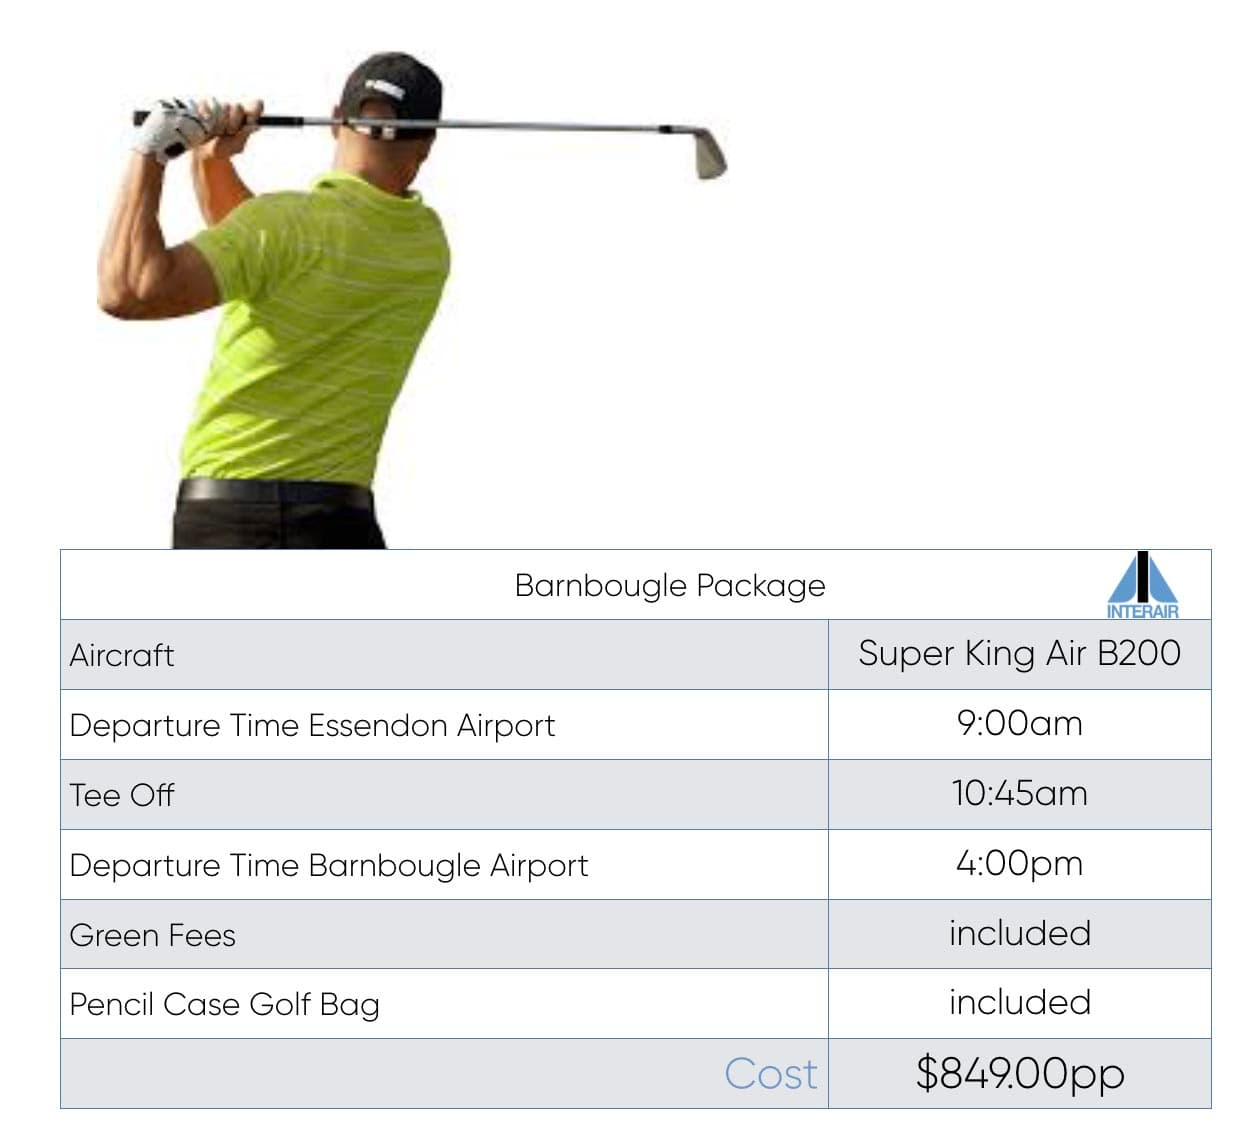 Barnbougle Package